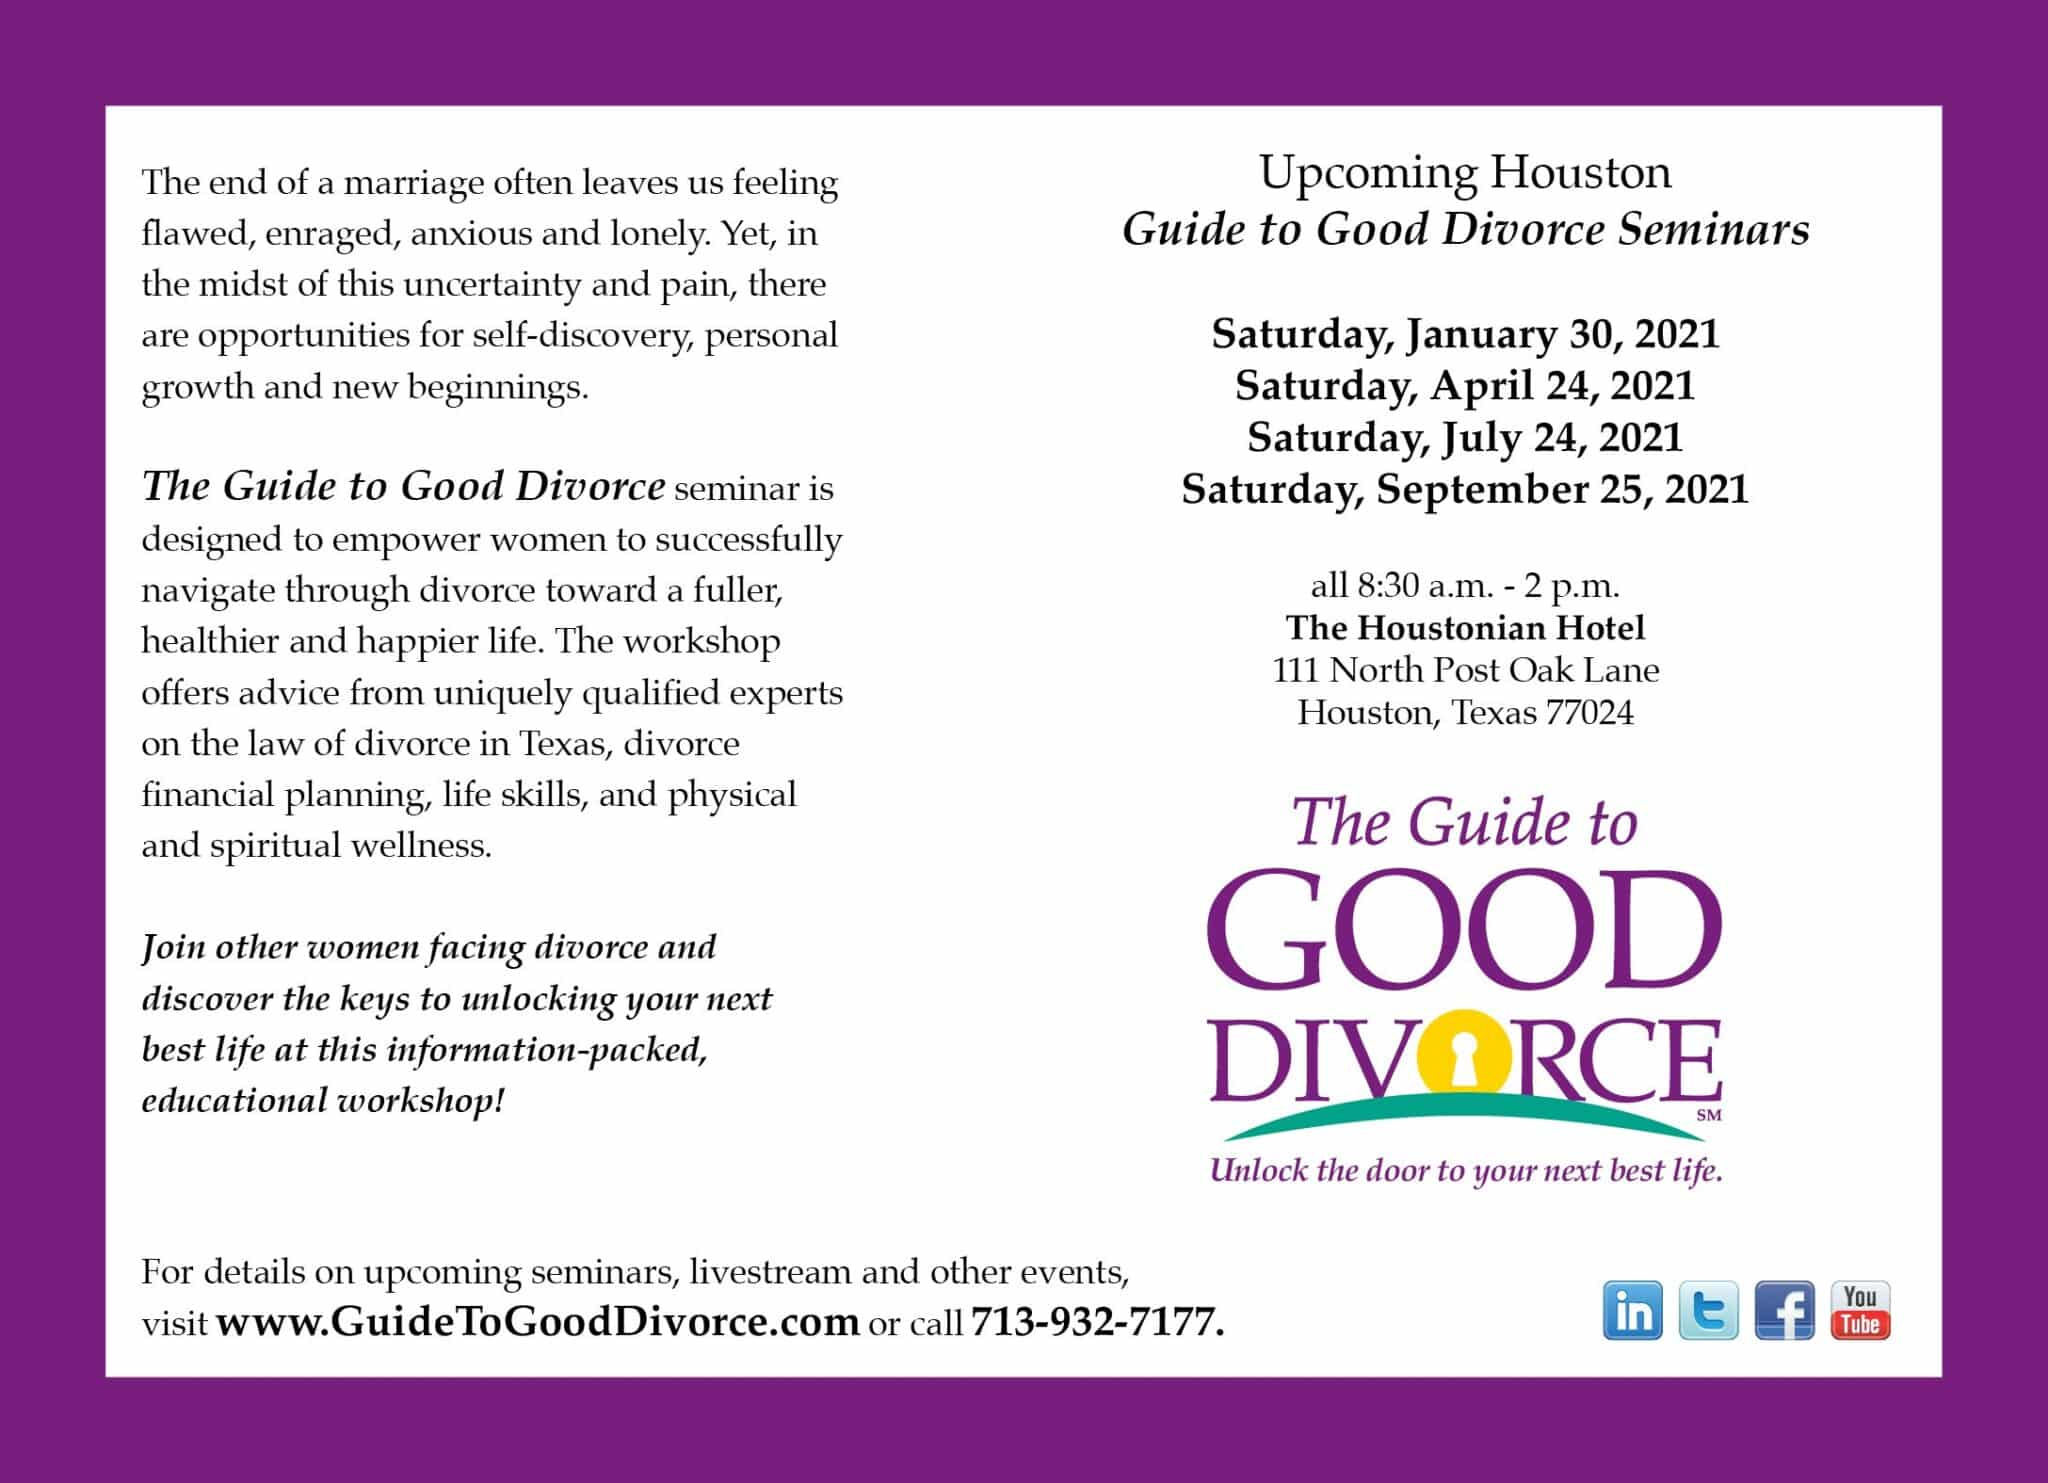 The Guide to Good Divorce Seminars